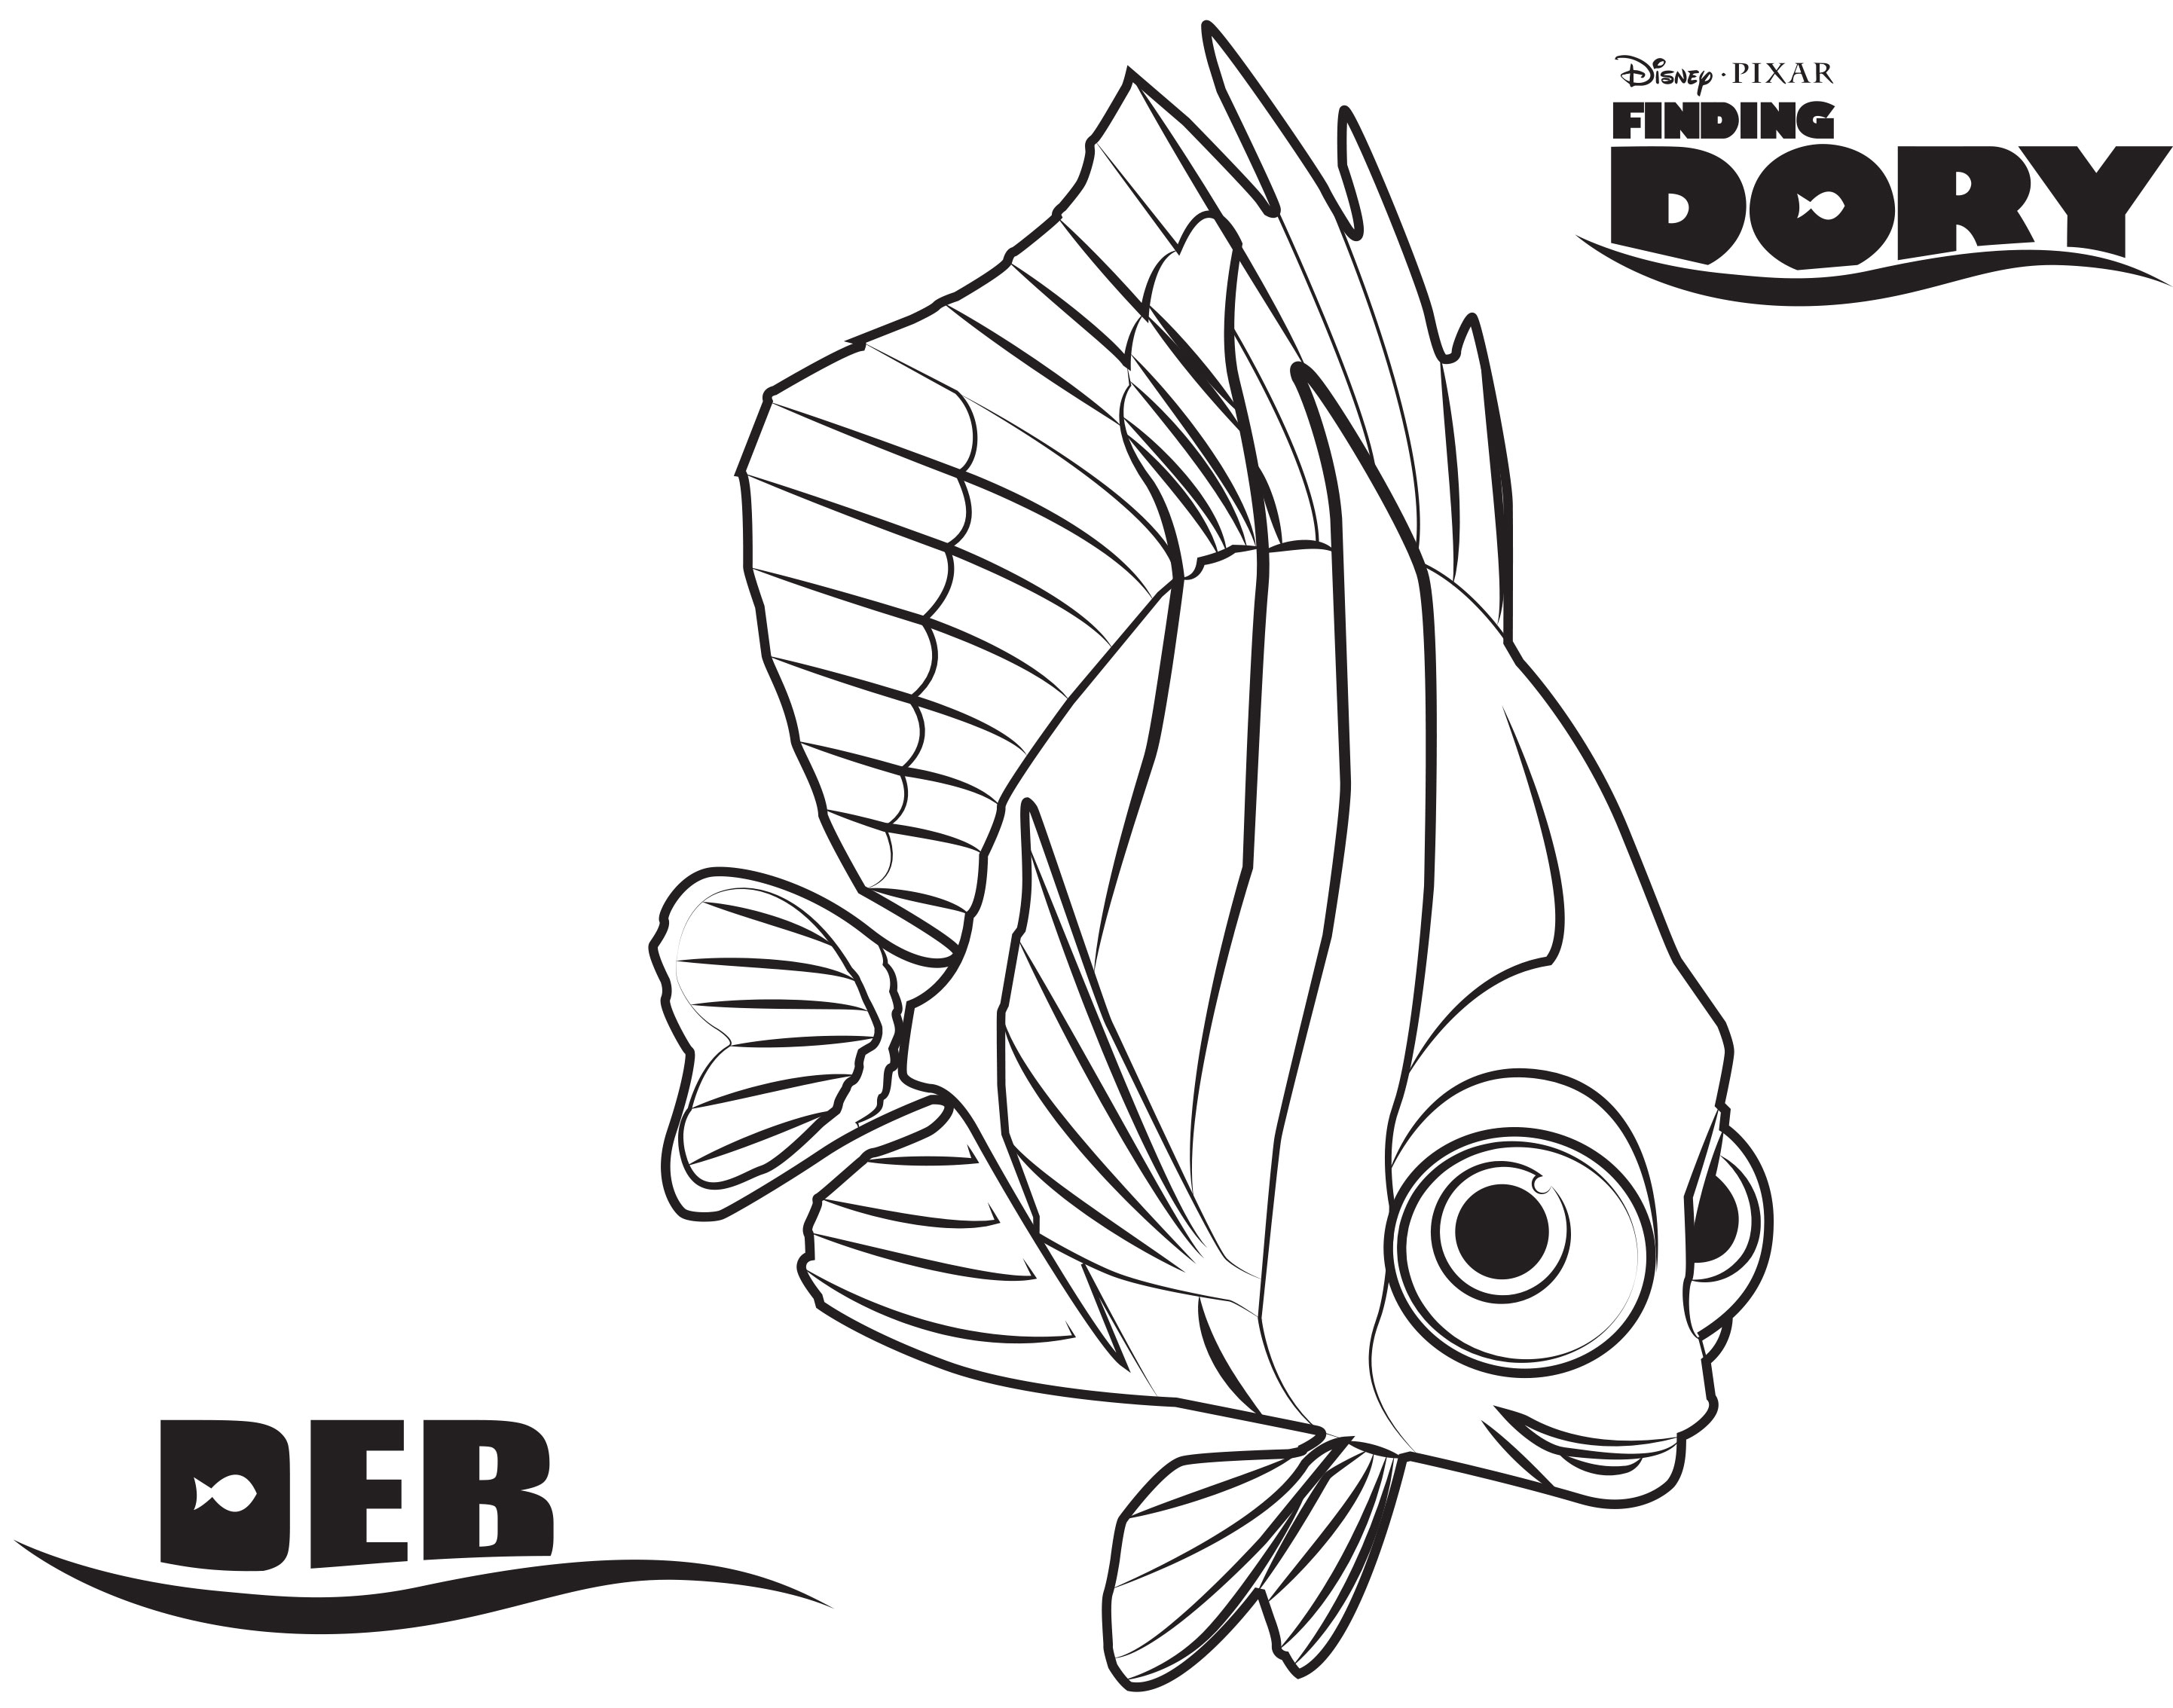 Finding Dory Drawing at GetDrawings.com | Free for personal use ...